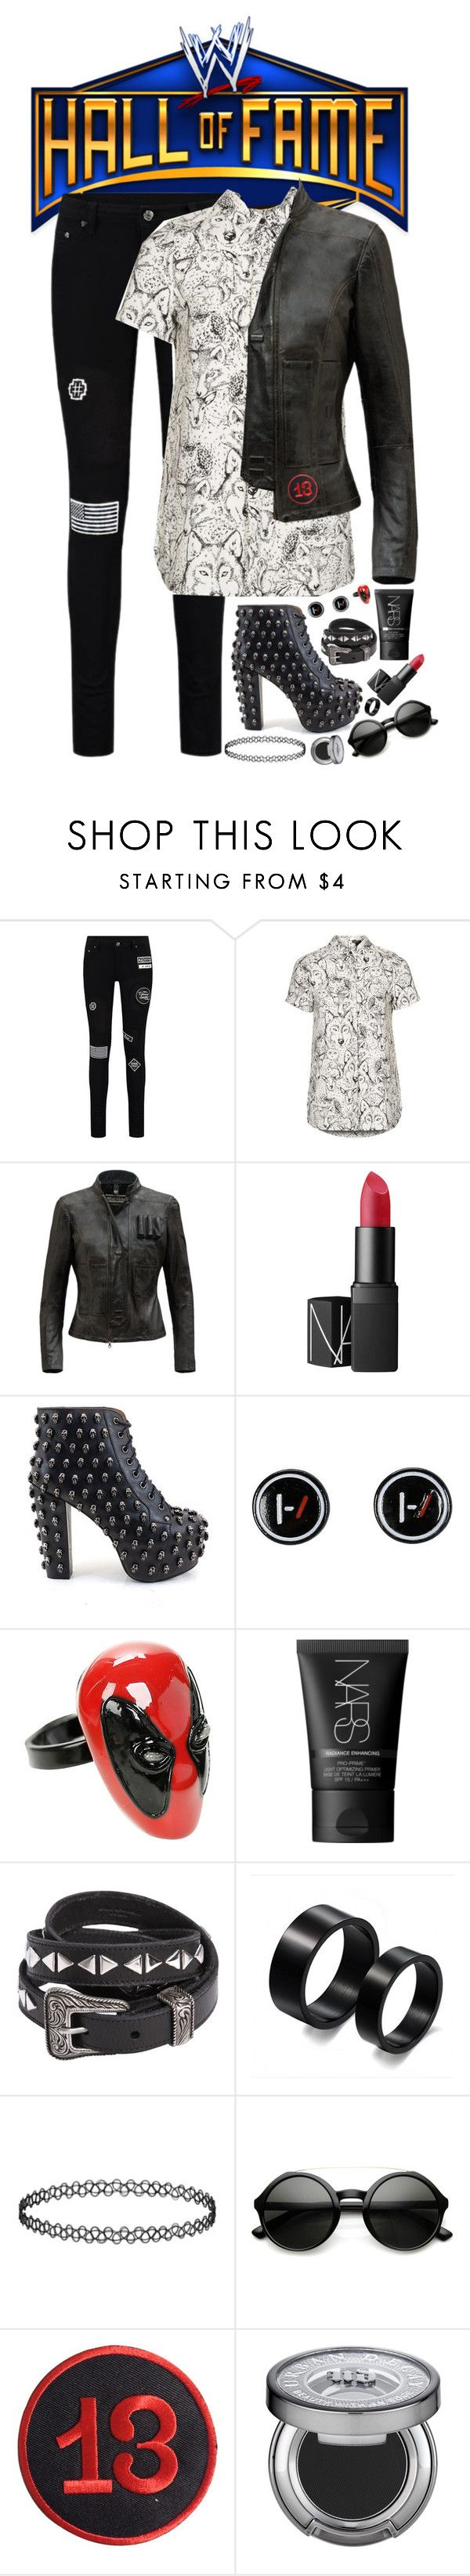 """WRESTLING INC BREAKING NEWS: Indie wrestler Lyrica seen at WWE Hall Of Fame Ceremony with friend Dean Ambrose (read desc.)"" by jet-black-fart ❤ liked on Polyvore featuring Topshop, NARS Cosmetics, Jeffrey Campbell, Yves Saint Laurent, LUCKY 13 and Urban Decay"